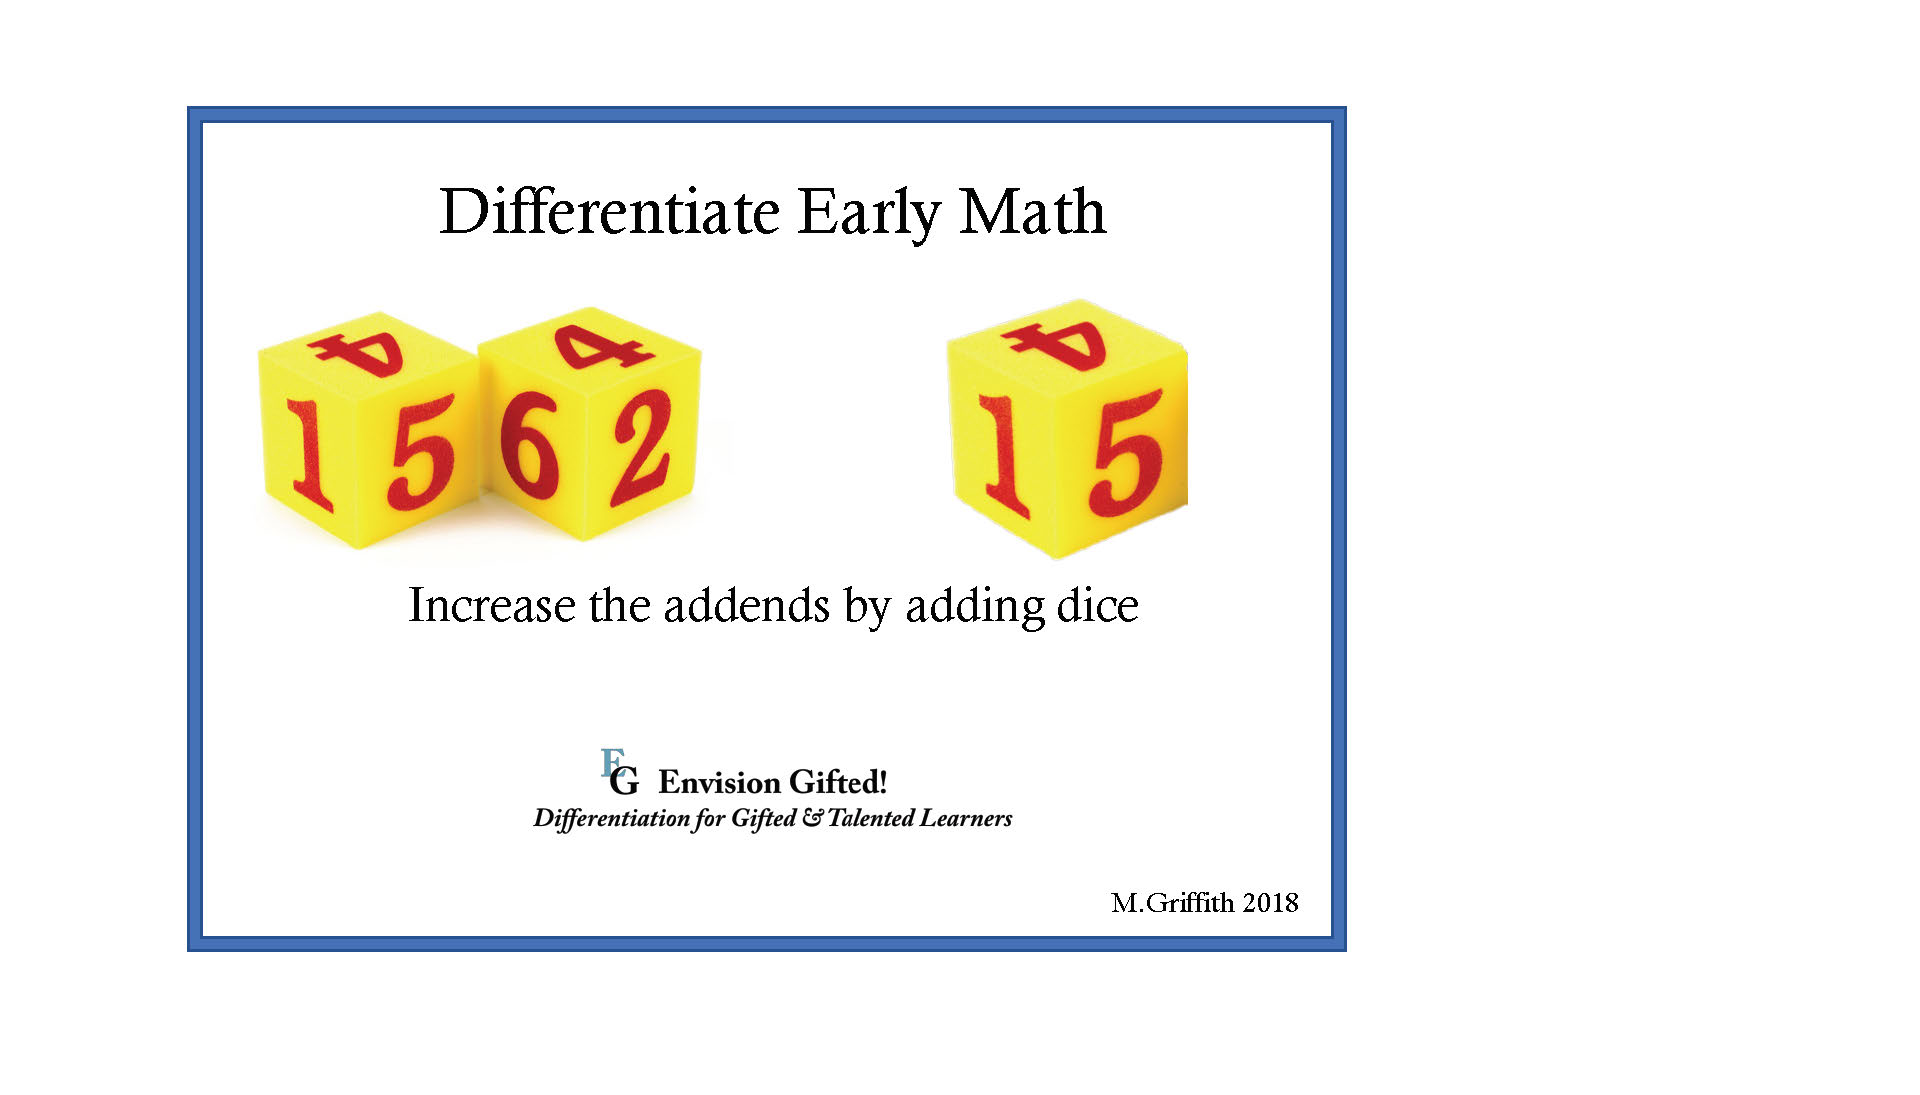 Envision Gifted - Differentiate Math